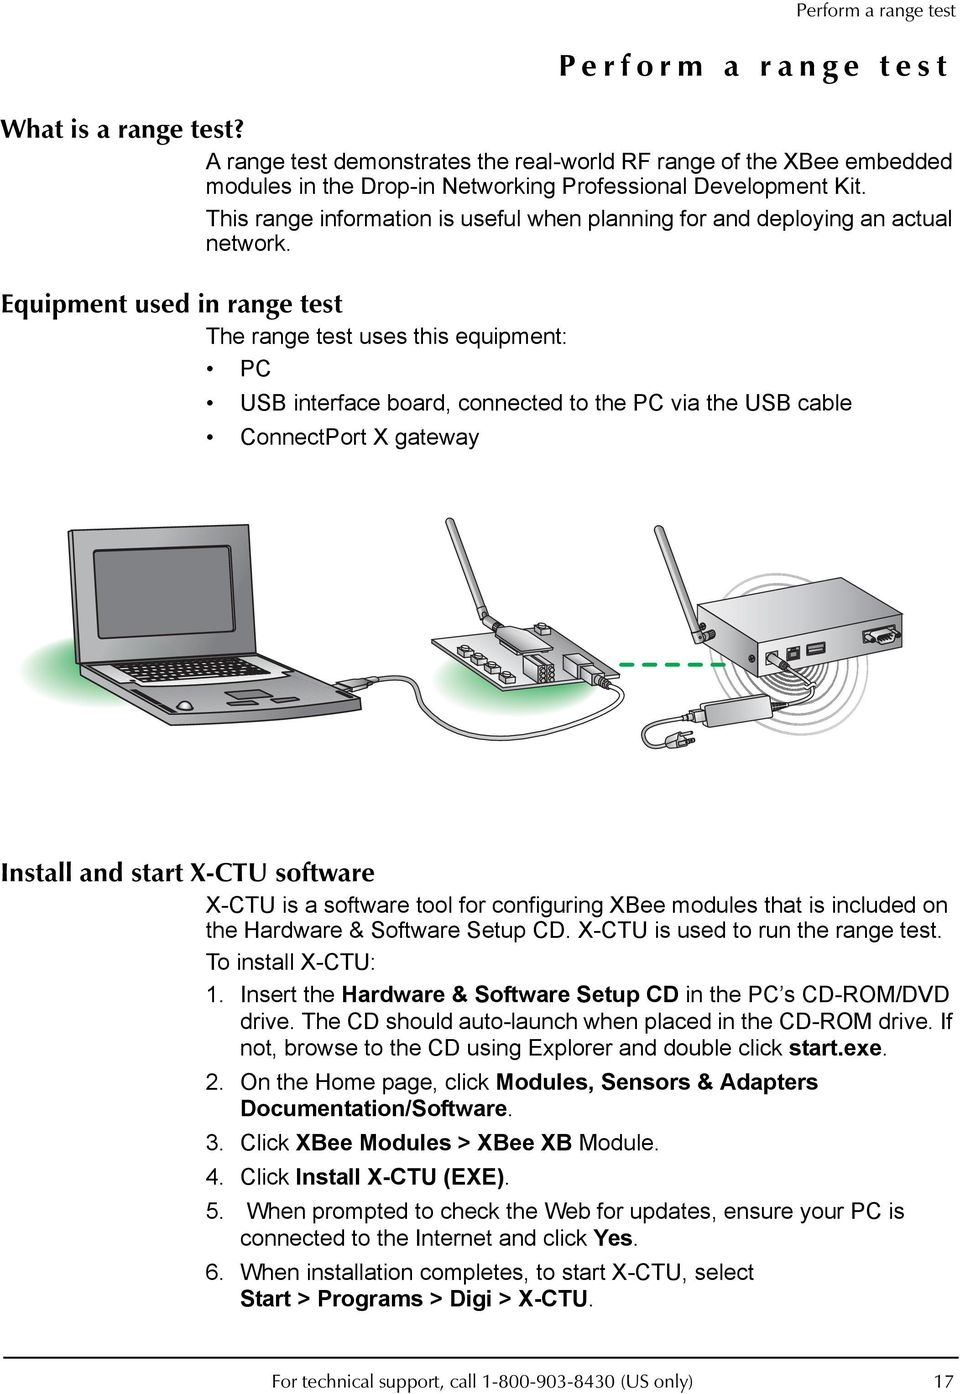 Equipment used in range test The range test uses this equipment: PC USB interface board, connected to the PC via the USB cable ConnectPort X gateway Install and start X-CTU software X-CTU is a